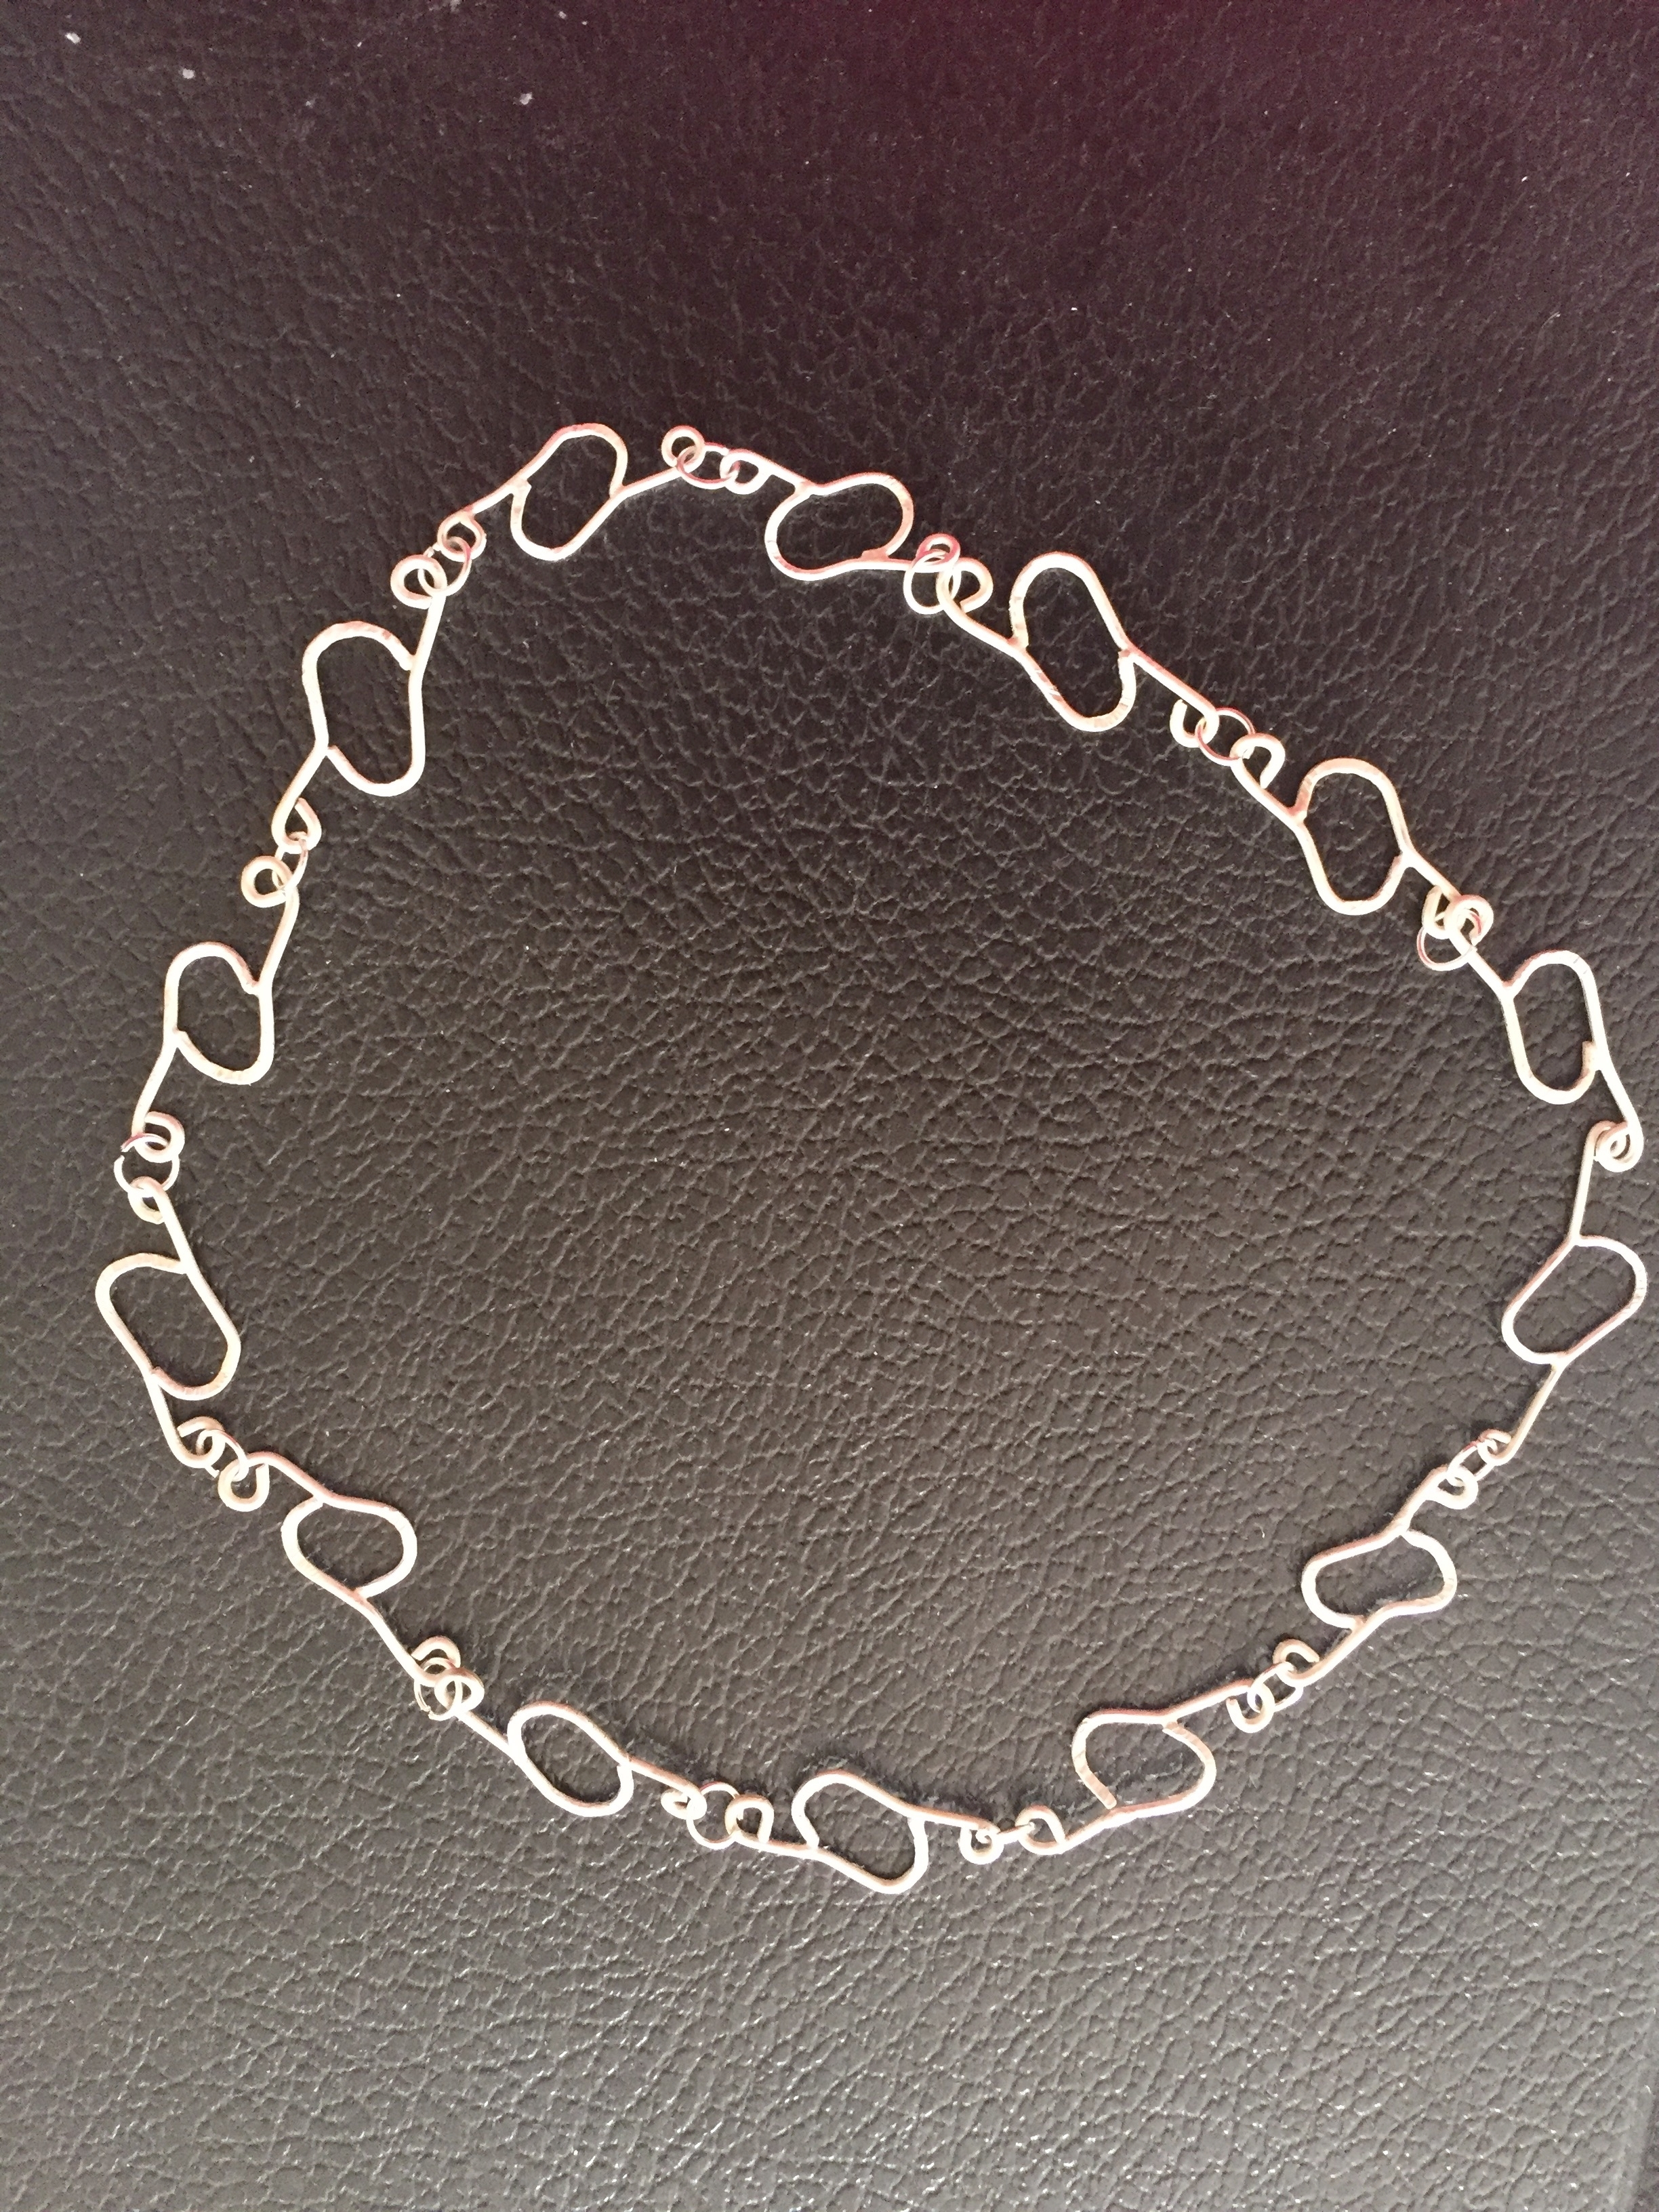 hand forged sterling silver chain, designed to be adjustable (contiguous links).